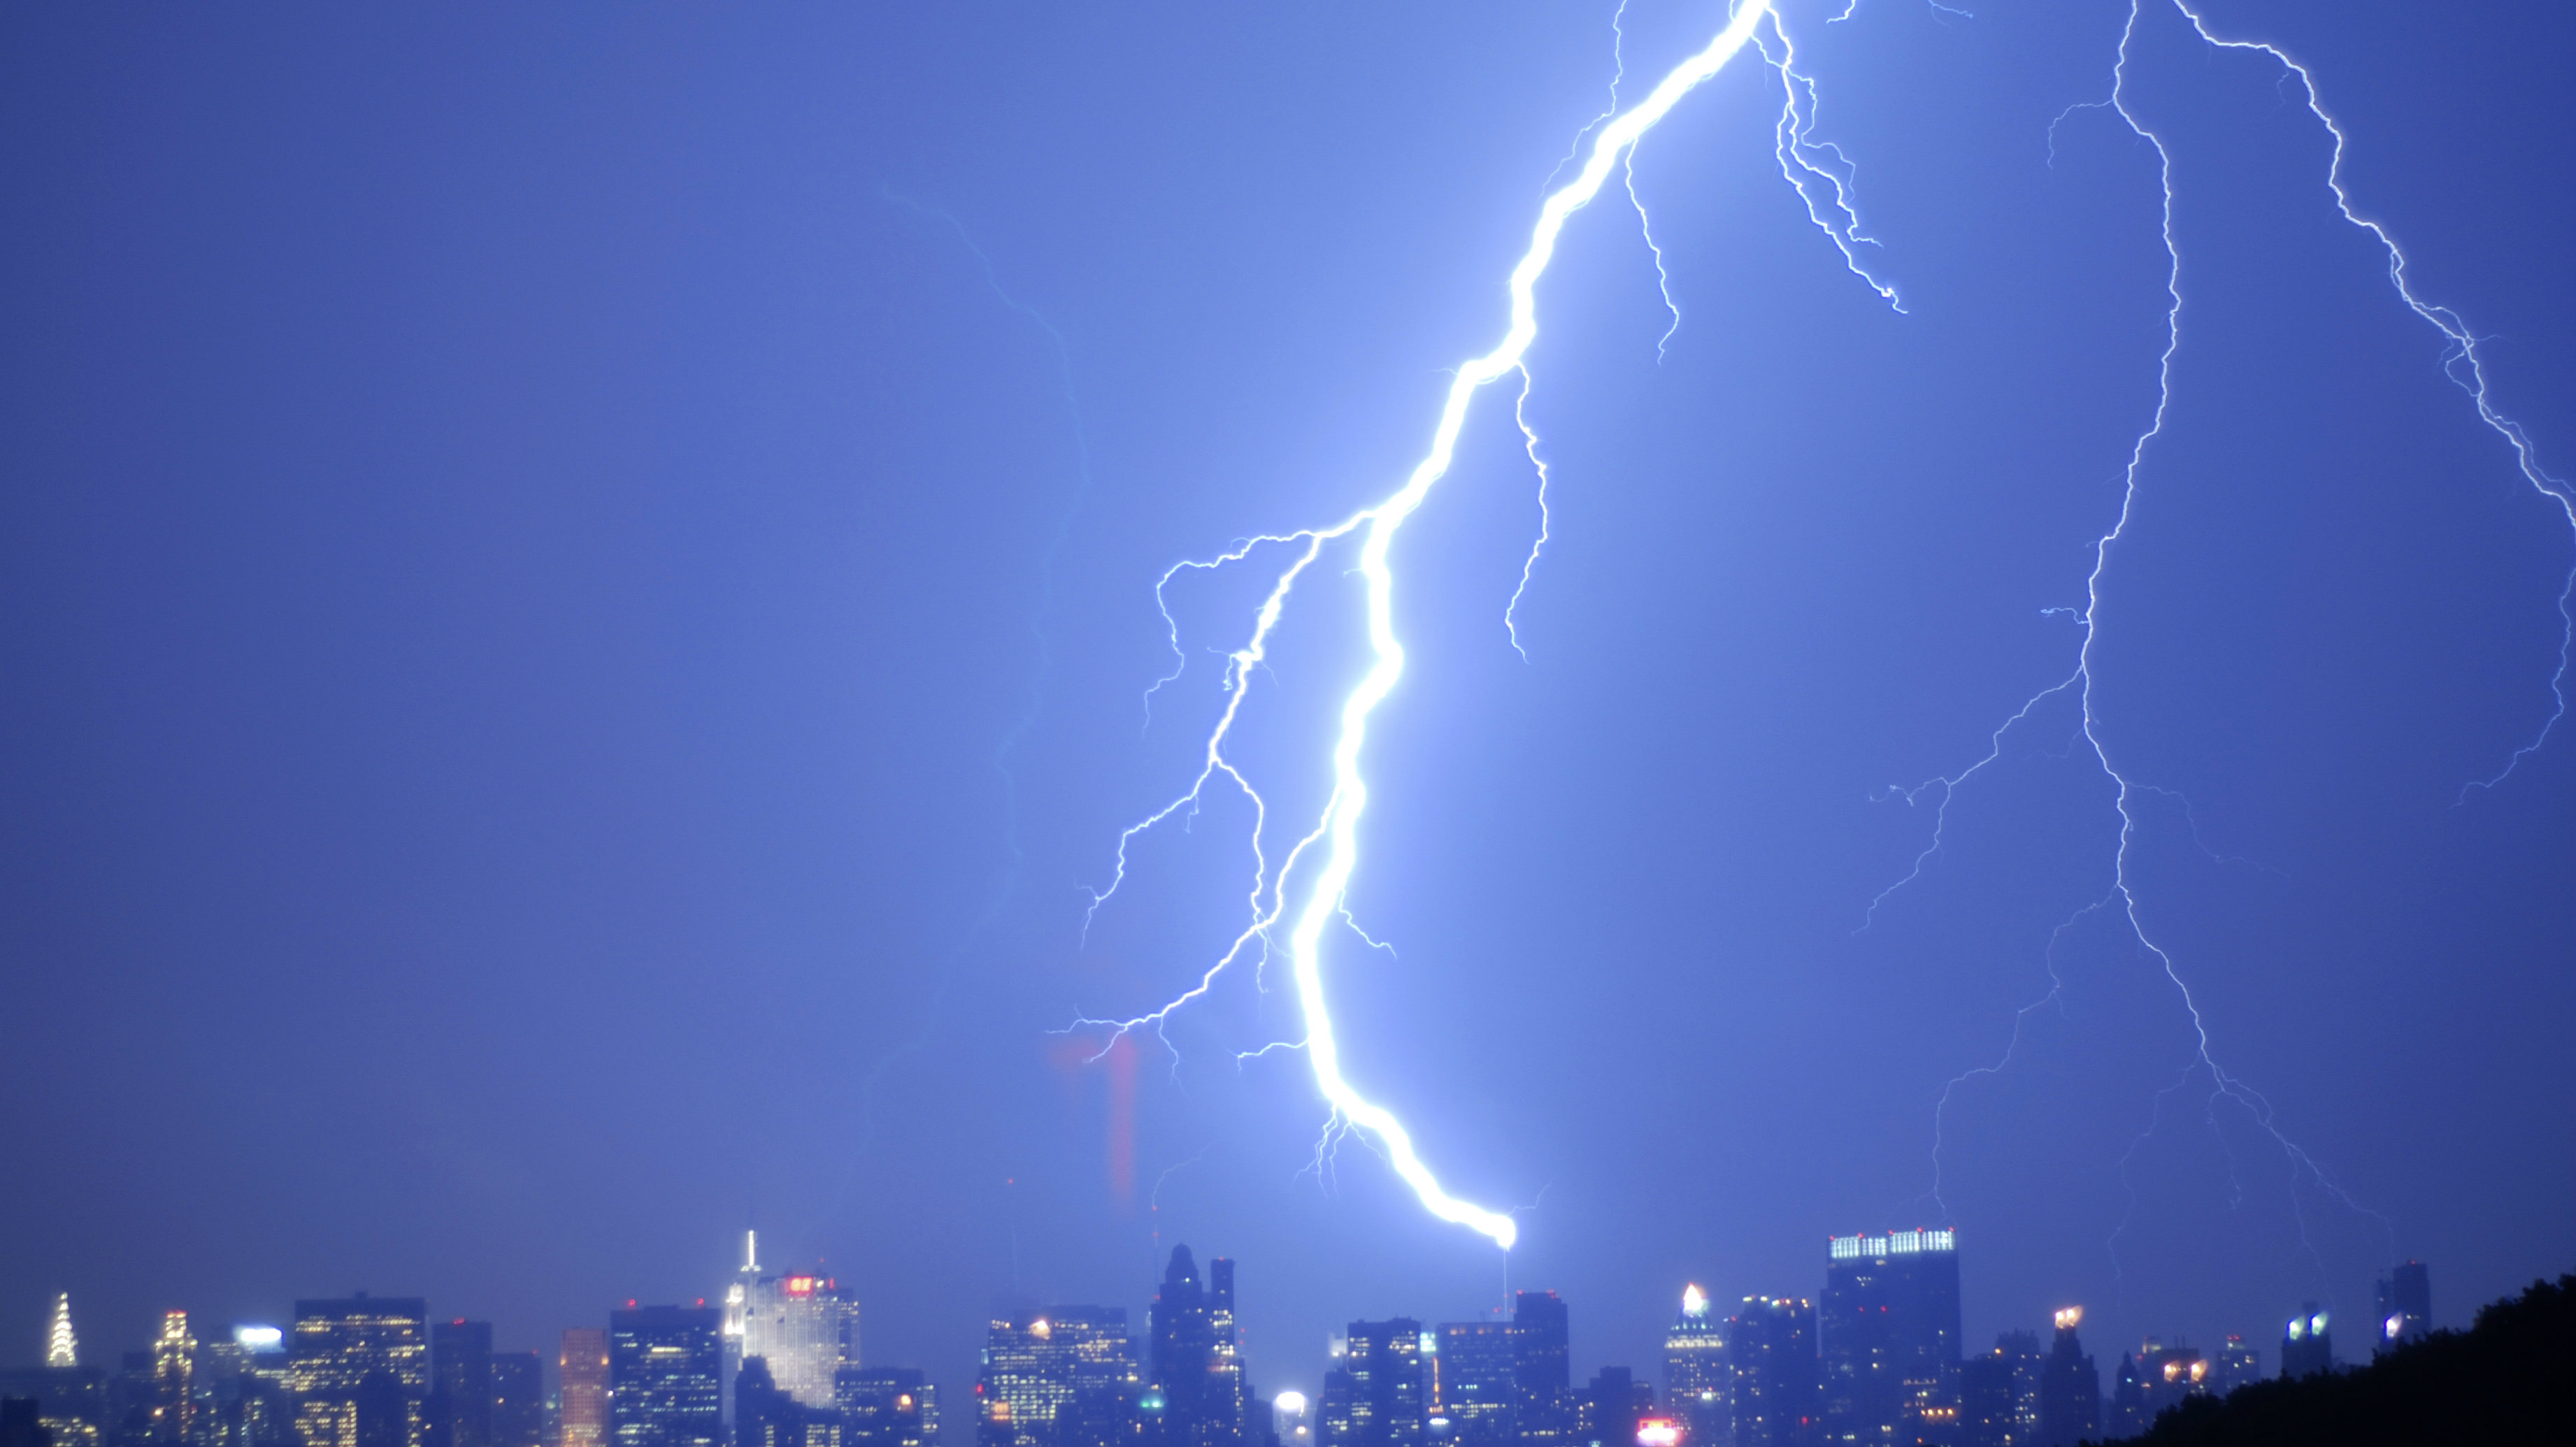 The New York Times building is struck by lightning in New York.